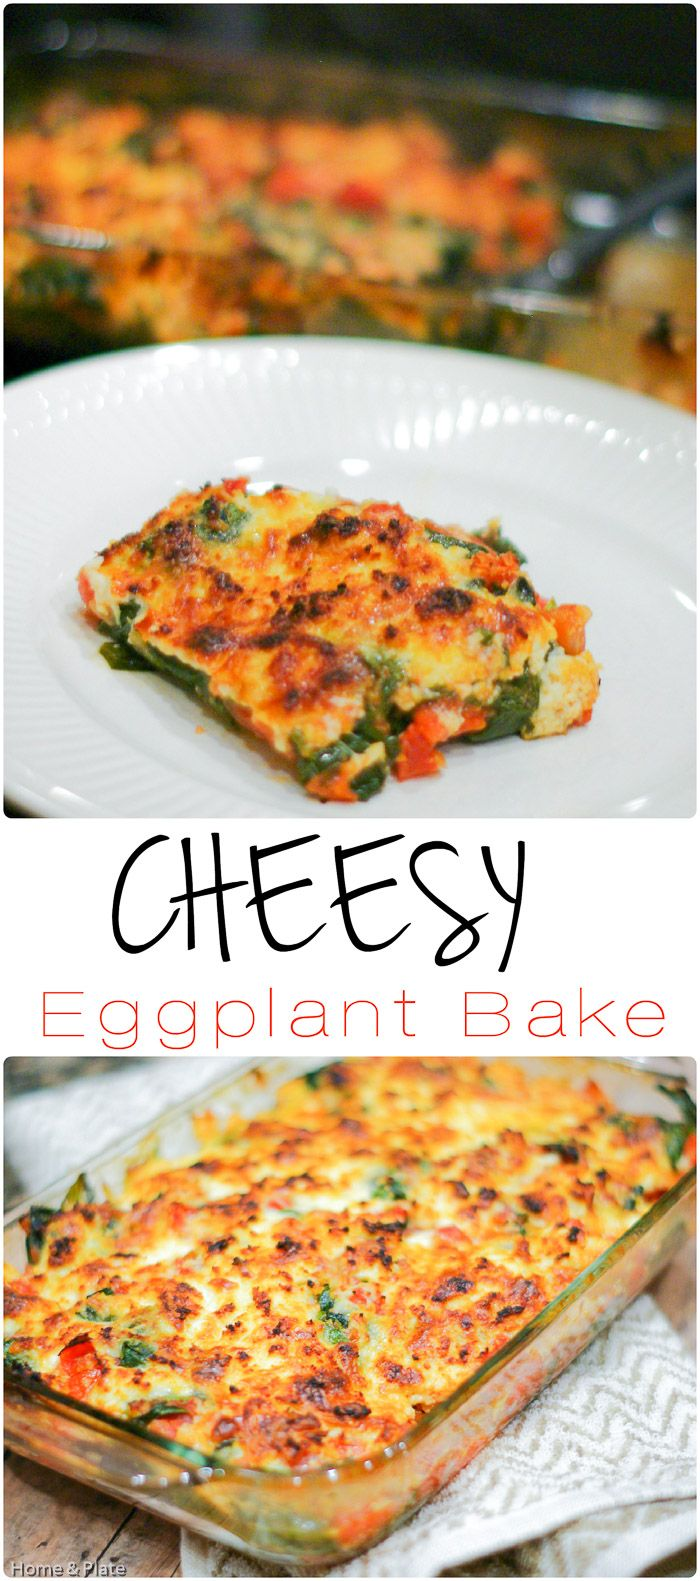 Cheesy Eggplant Bake   Home & Plate   www.homeandplate.com   Roasted eggplant, juicy red tomatoes and fiber rich baby spinach come together deliciously.